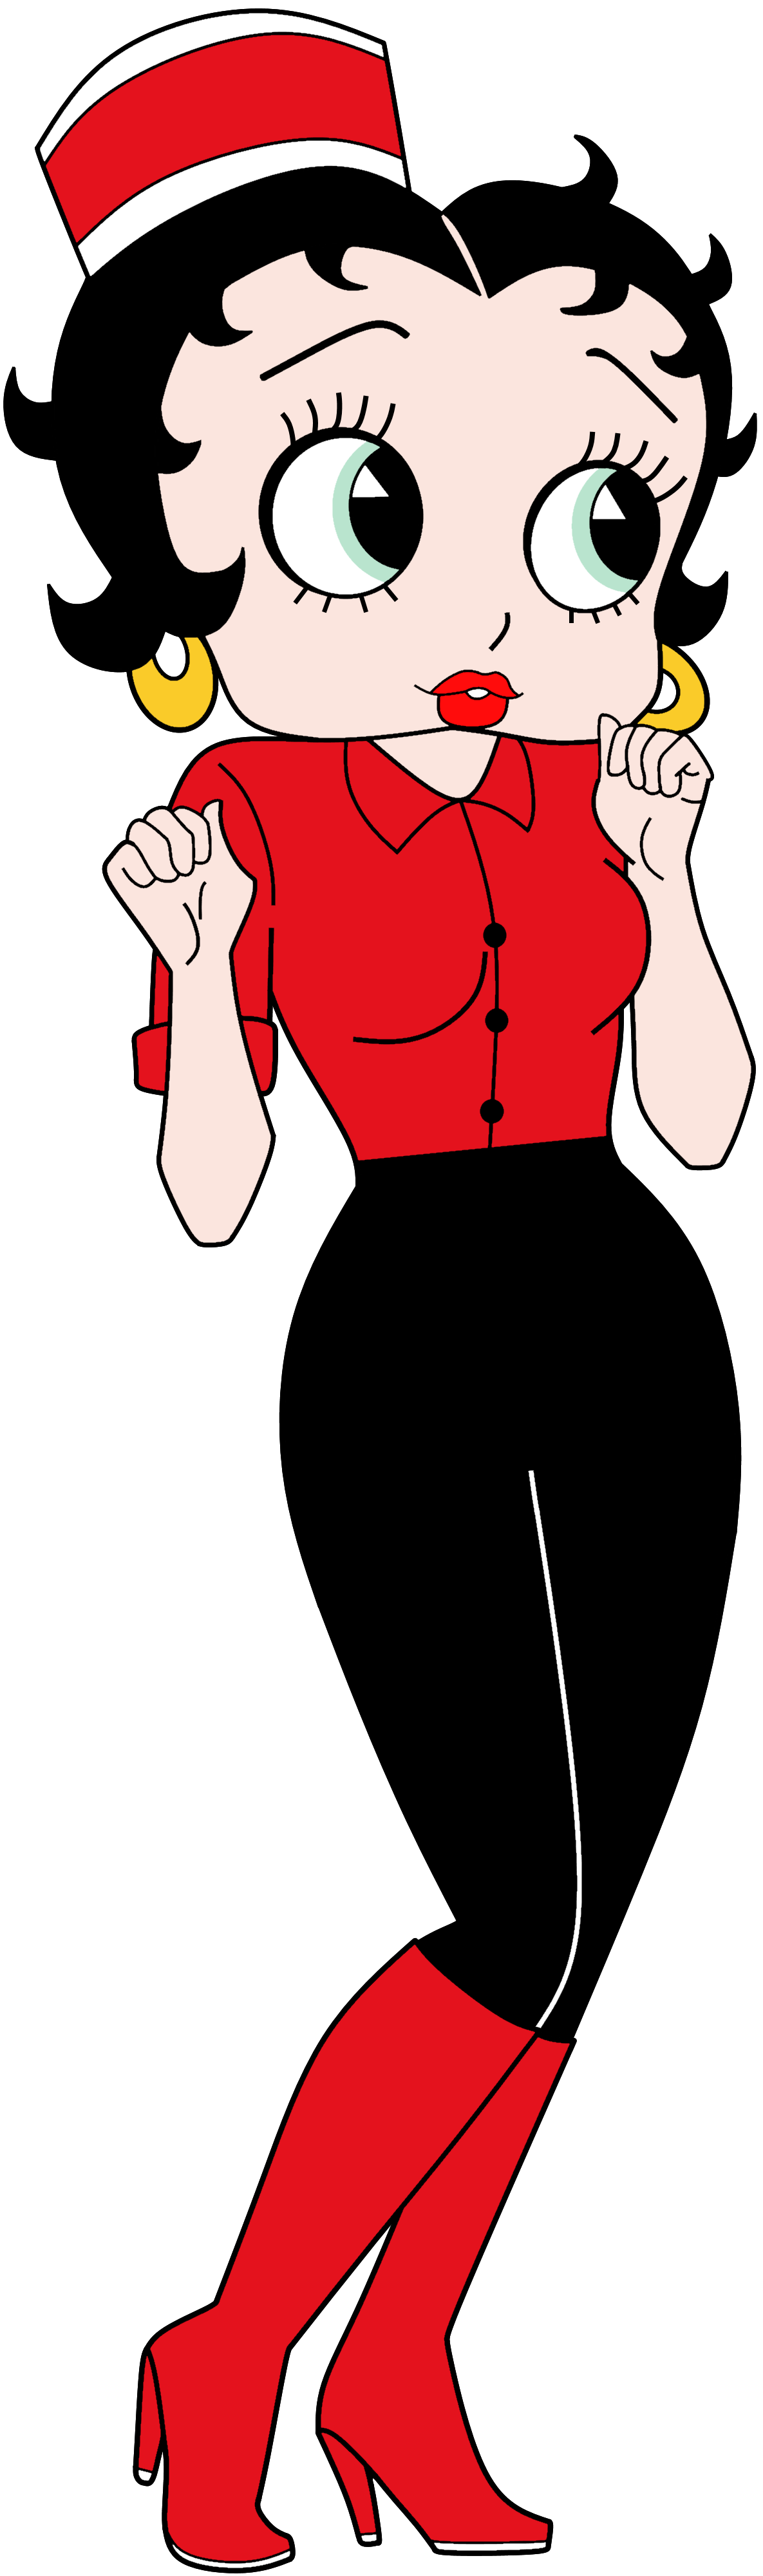 Betty Boop Anime Waitress Render.png